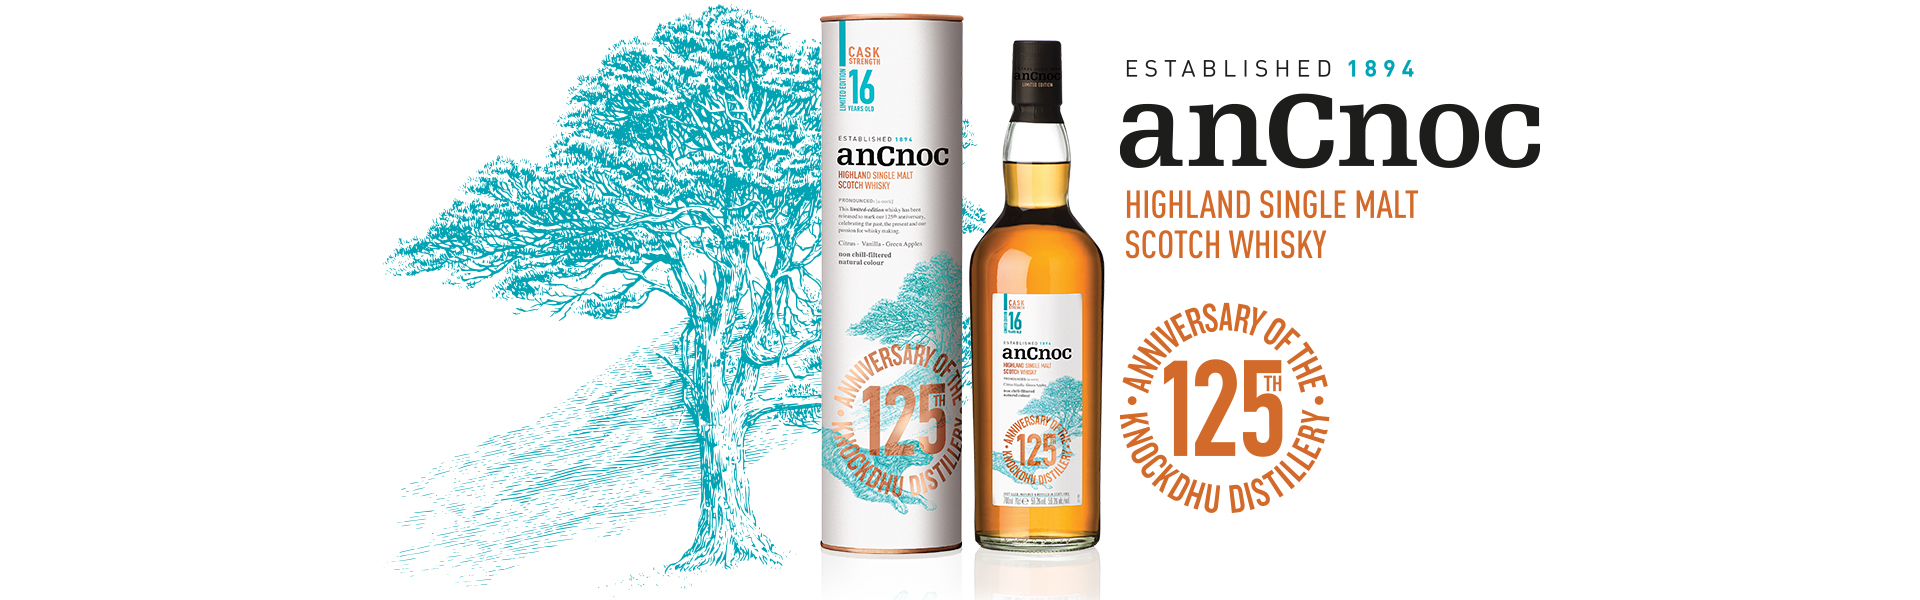 anCnoc 16 YO Limited Edition – En renässans inom Single Malt Whisky